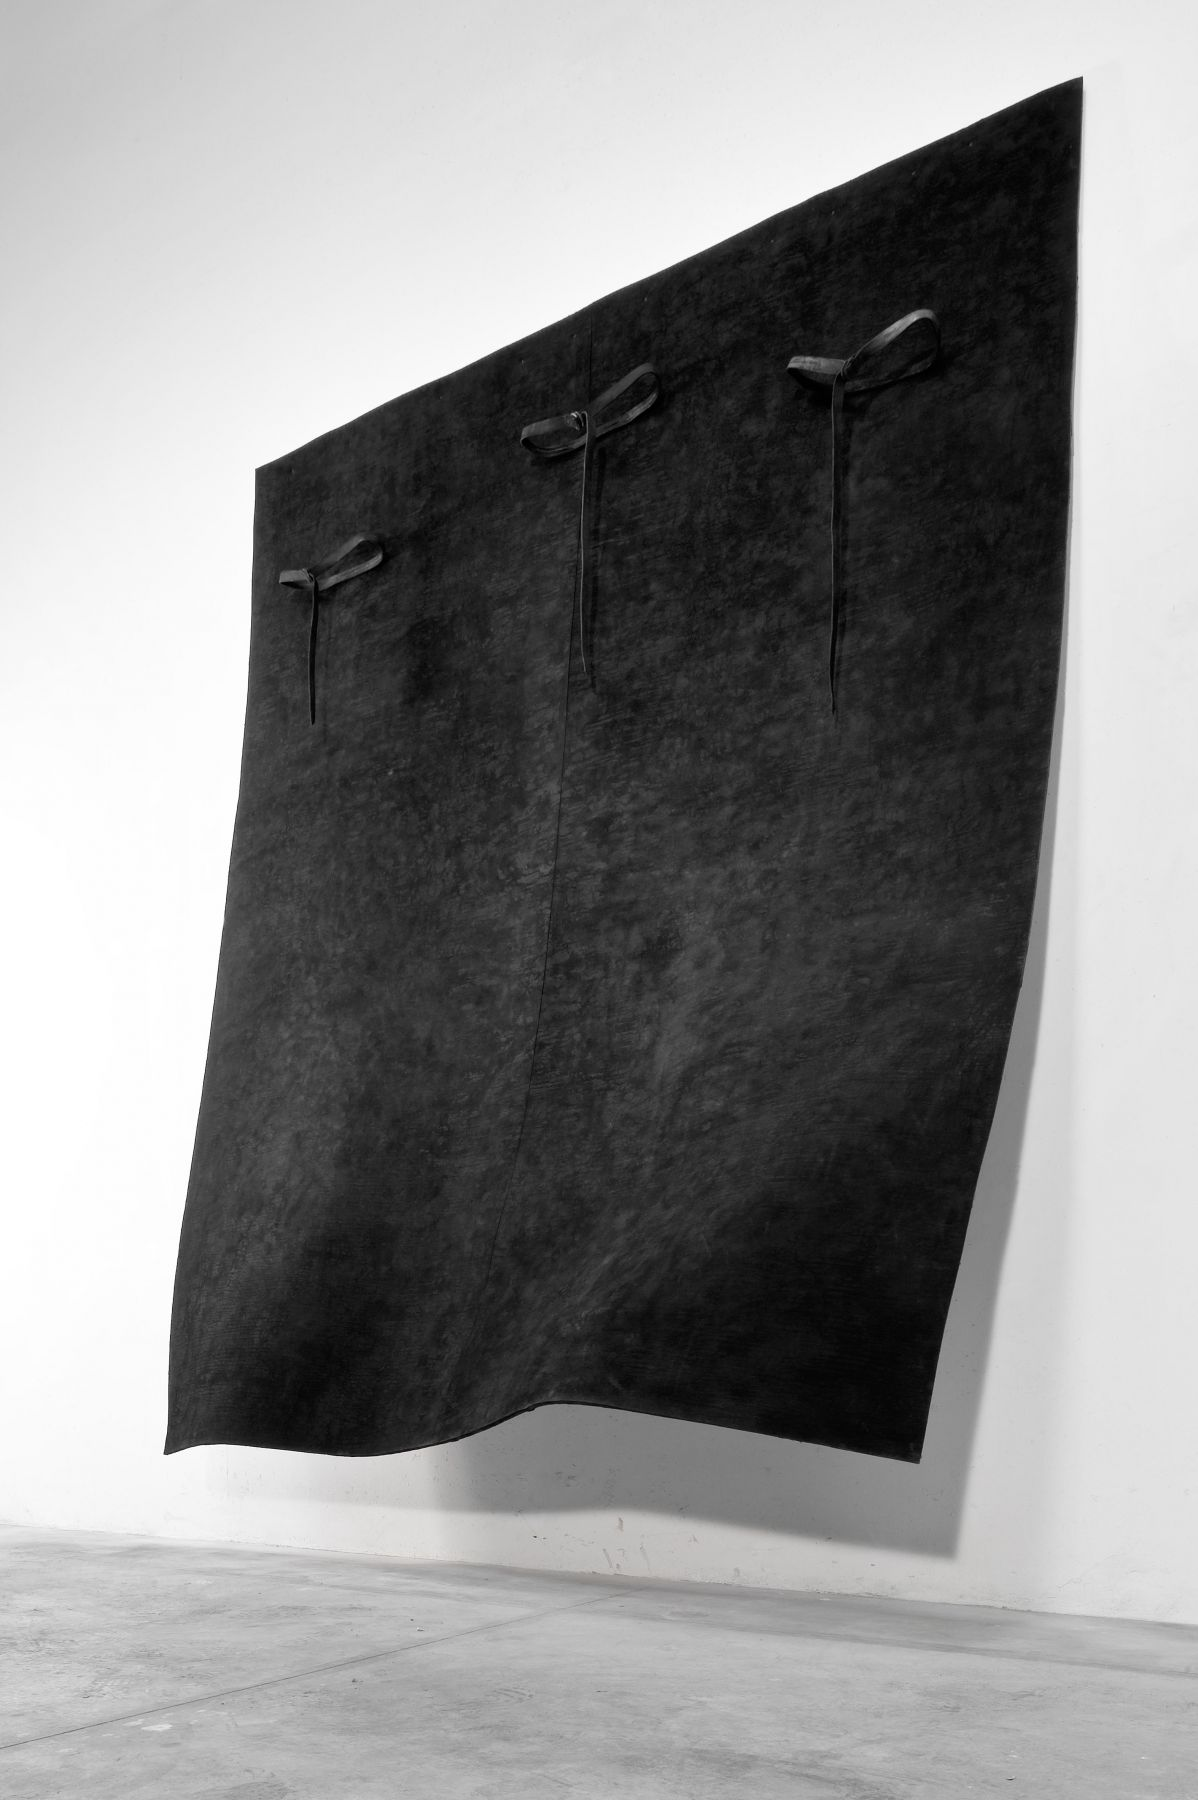 felt, leather, iron and metal sculpture by Italian contemporary artist Pier Paolo Calzolari